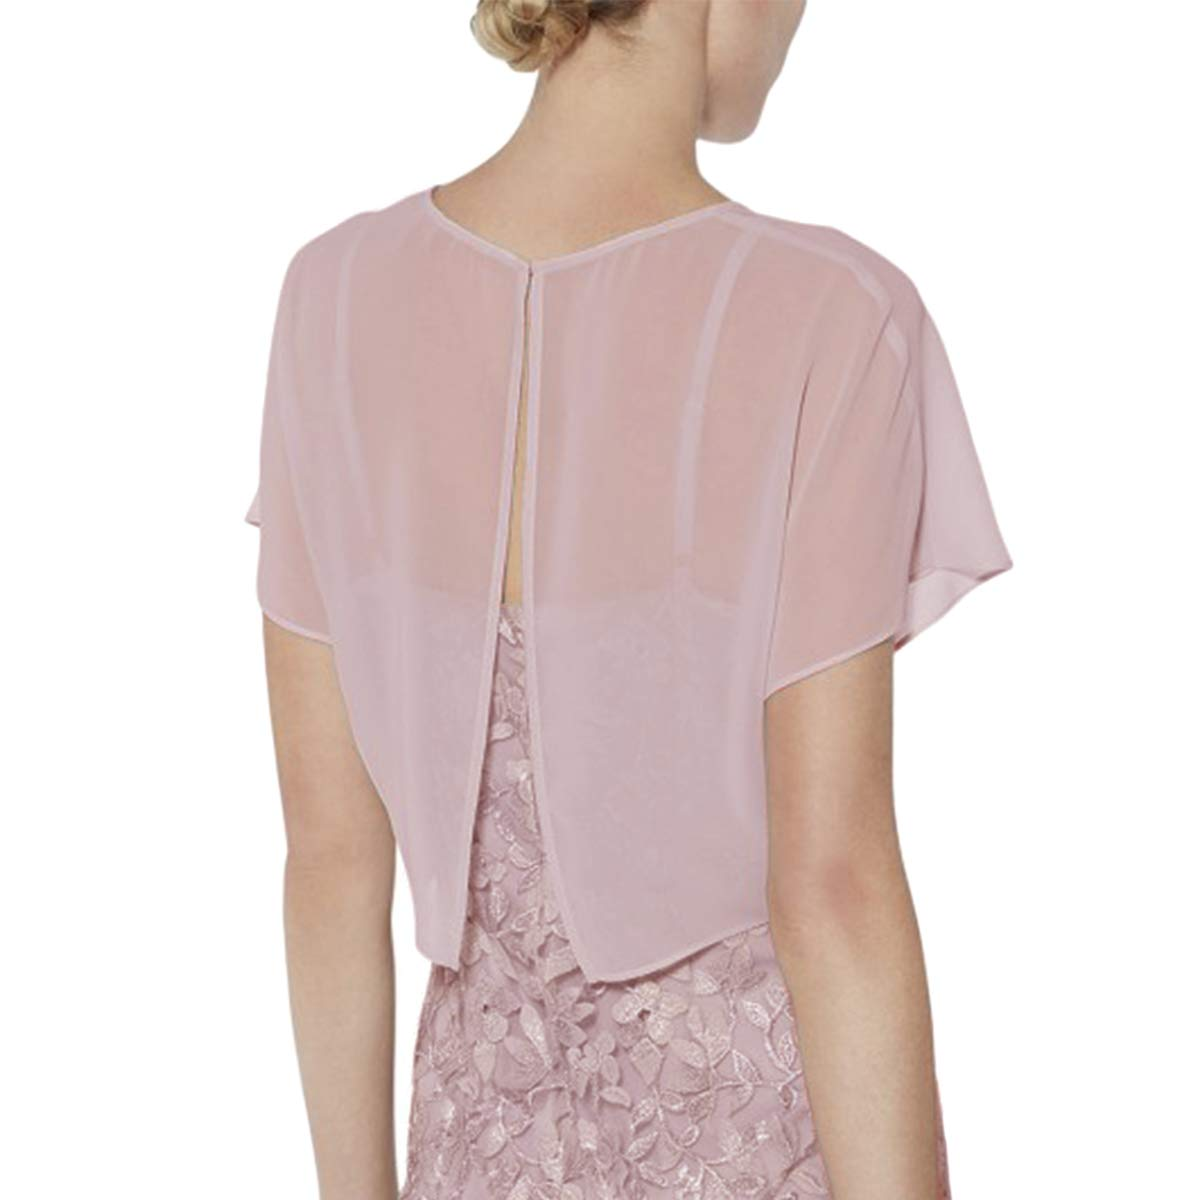 Short Sleeves Pink Chiffon Party Evening Wedding Bolero